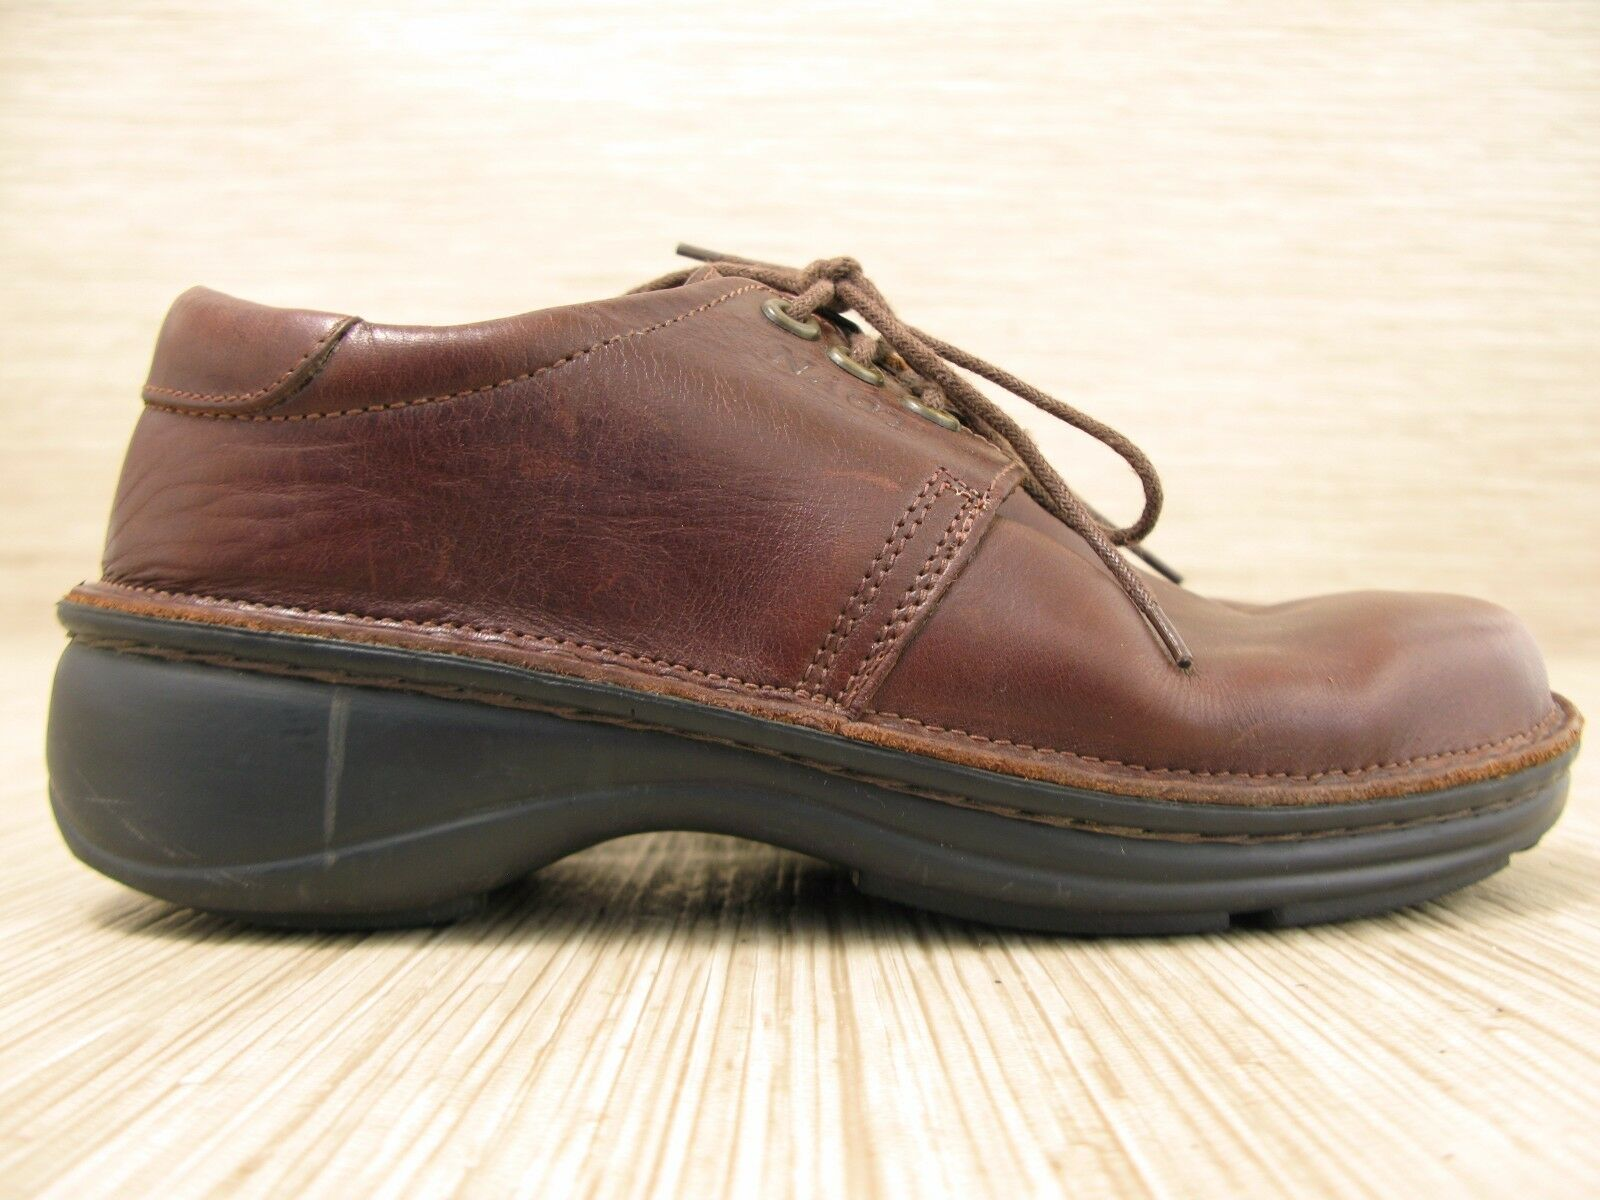 NAOT Dark Marroneee Leather scarpe Wouomo US 6-7 EUR 37 Lace Up Oxfords Cork Insole